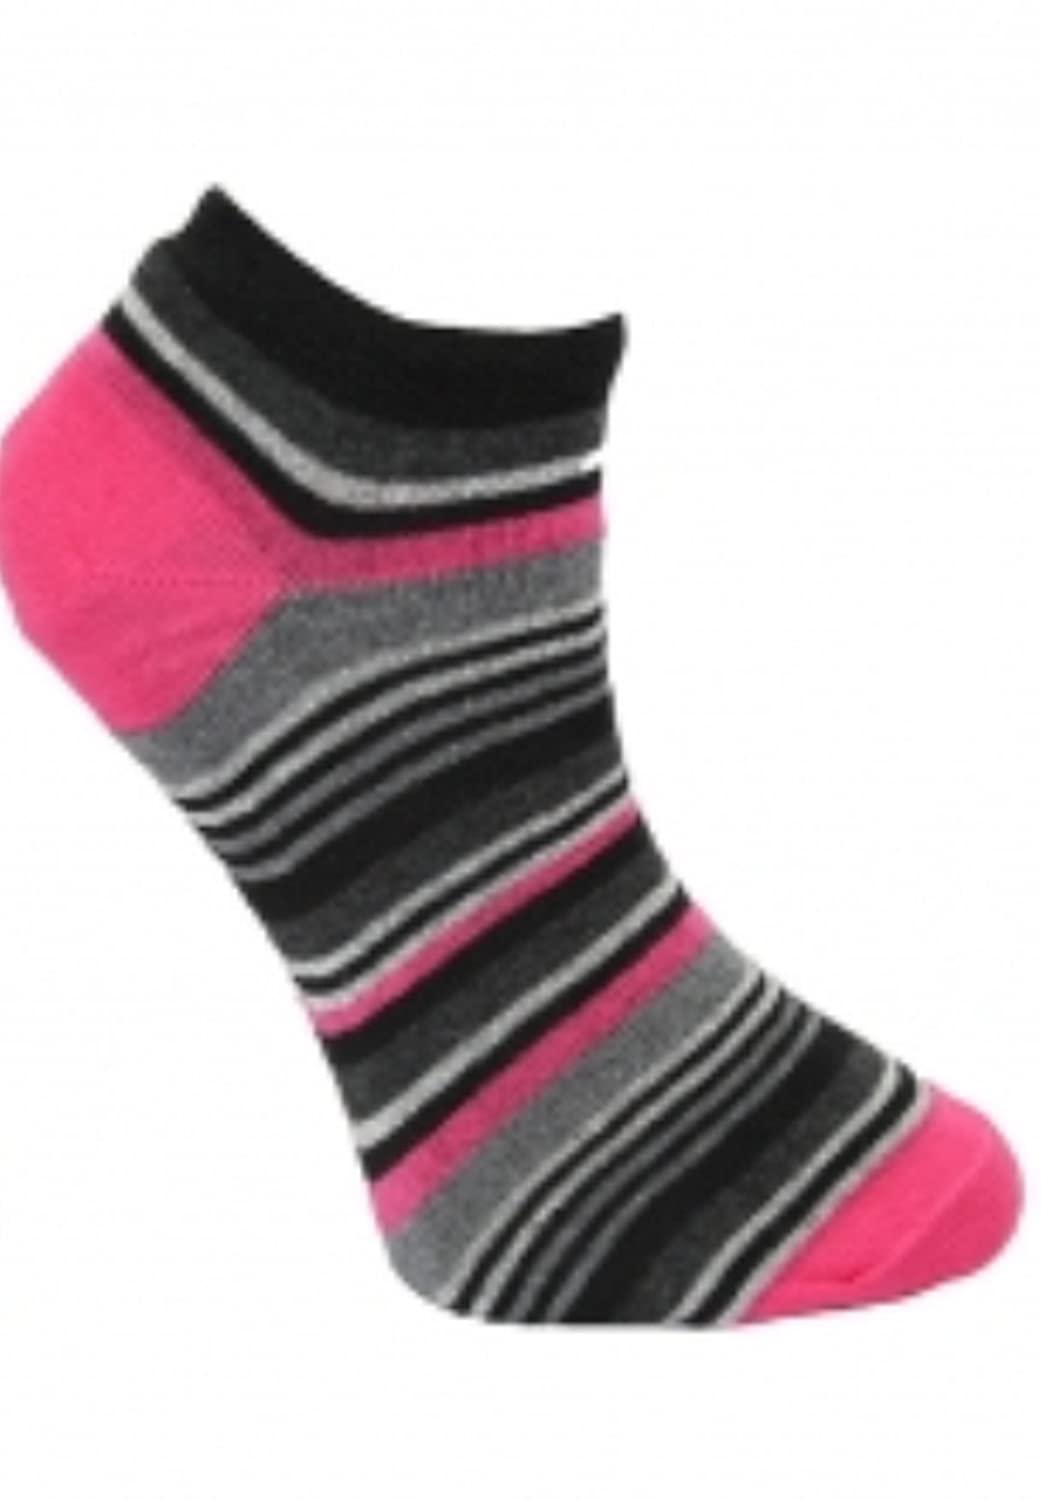 12 Pairs Men/'s Active 3 Stripe Cotton Rich Trainer Liner Socks by Performax